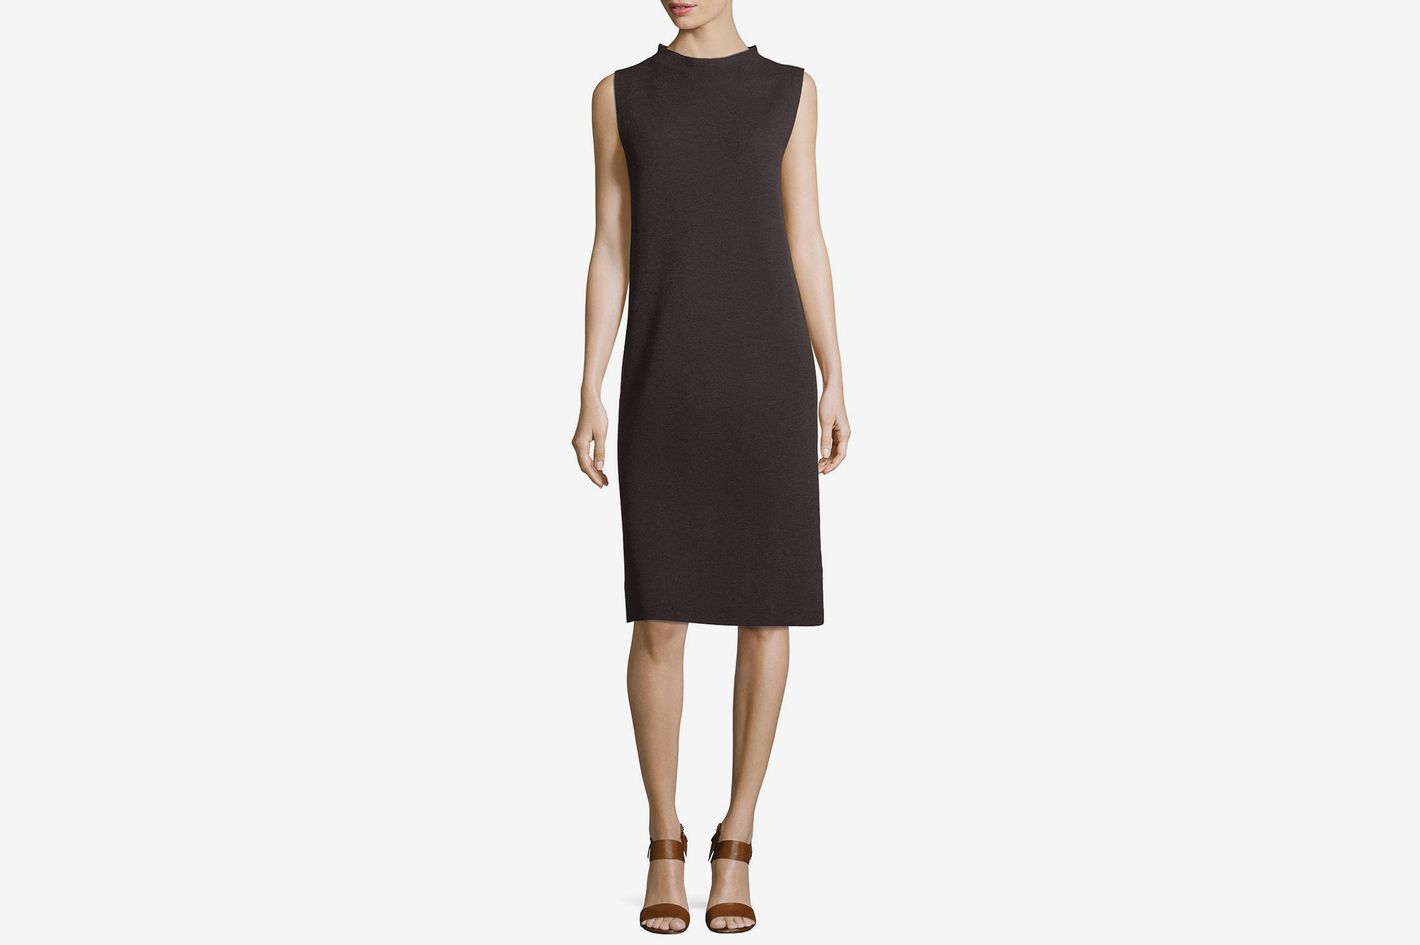 Eileen Fisher Sleeveless Funnel-Neck Wool Sheath Dress, Petite